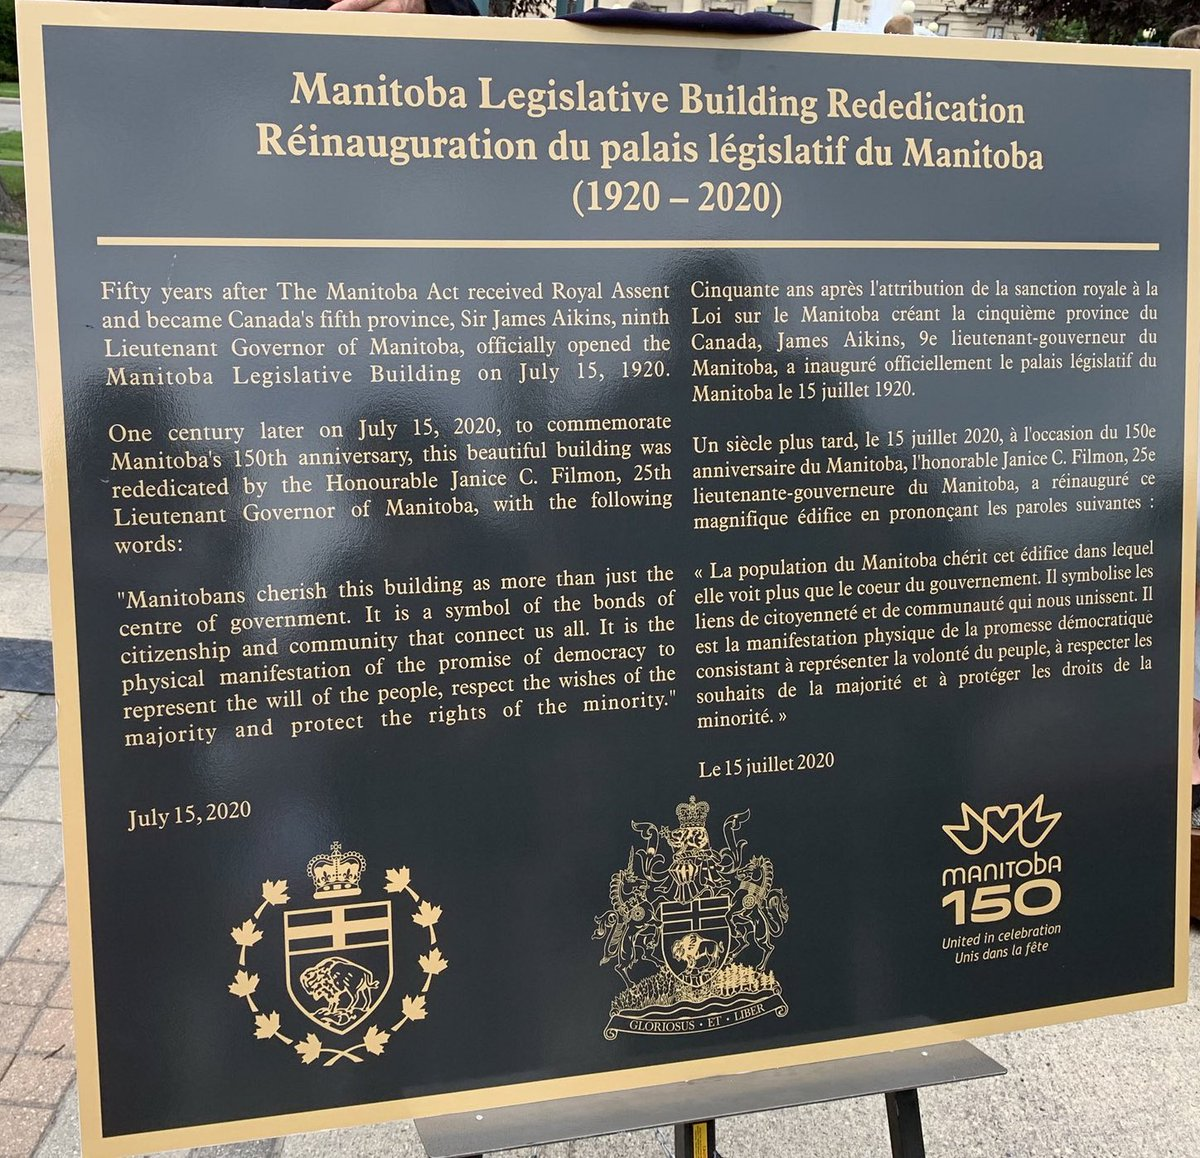 test Twitter Media - Today, we celebrate the 100th anniversary of Manitoba's Legislature. It was a pleasure to attend the formal re-dedication ceremony and the unveiling of the plaque. #mb150 https://t.co/3rbMnk8wfe